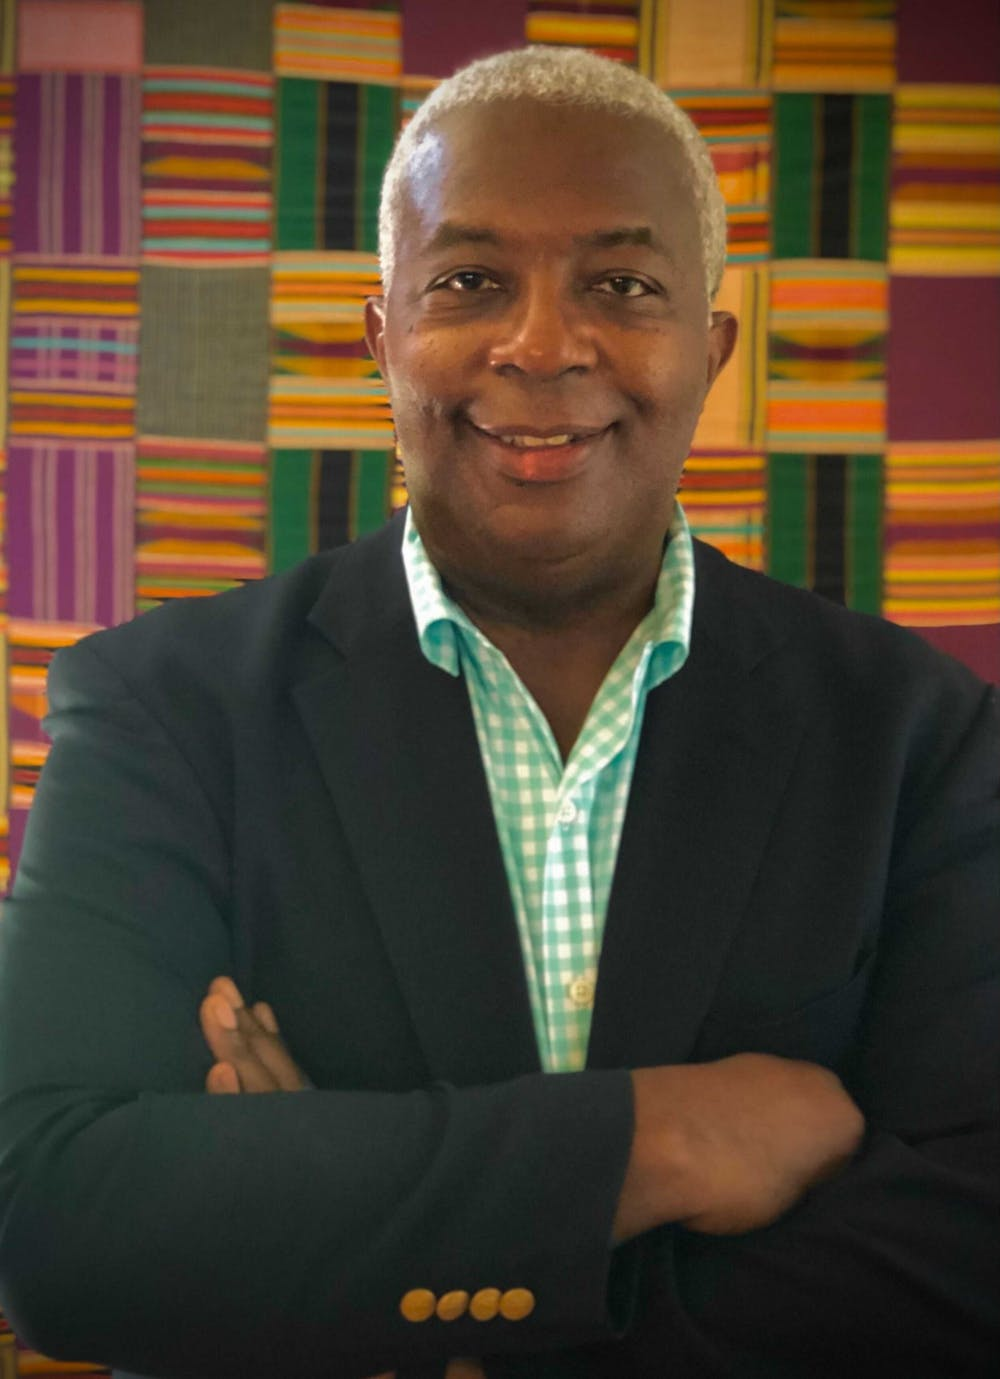 AU selects policy analyst and journalist as new SOC dean